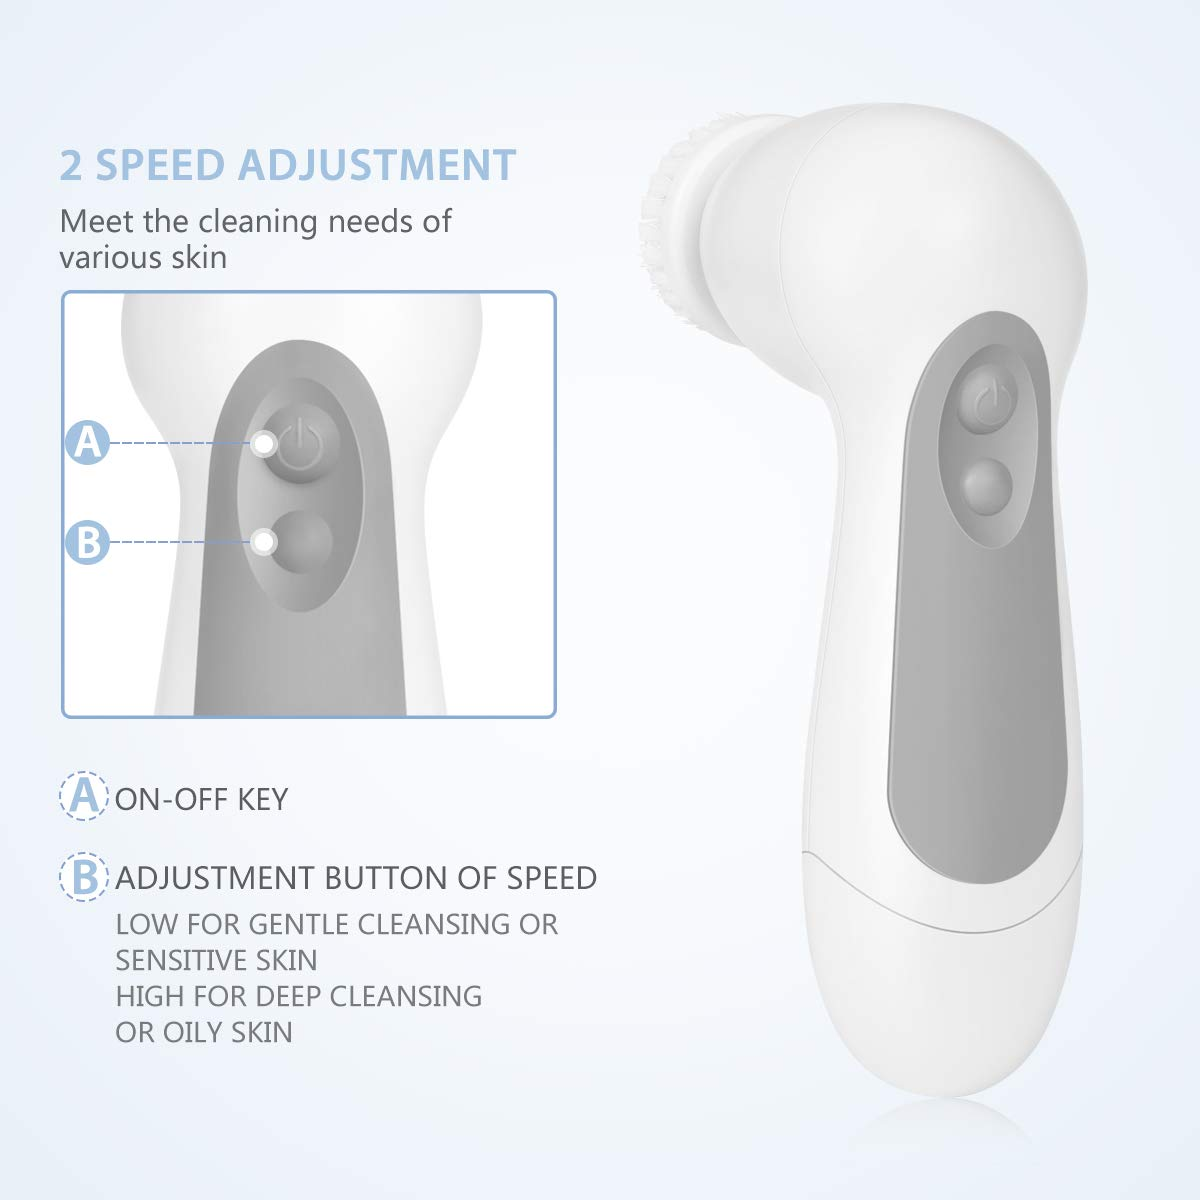 Facial Cleansing Brush, Waterproof Face Spin Brush with 7 Exfoliating Brush Heads - Gray